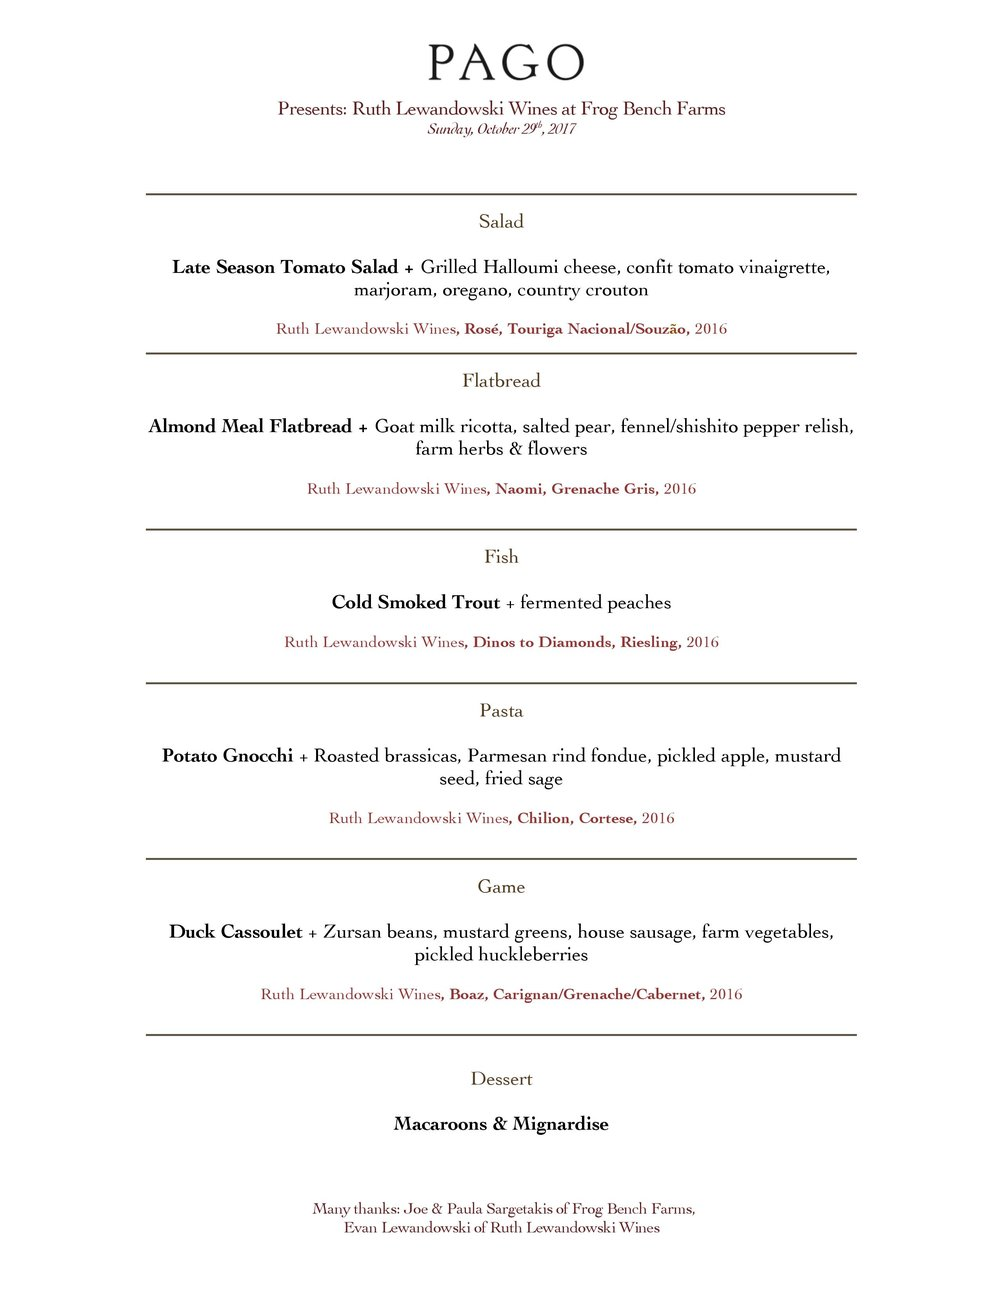 RUTH Harvest Menu 10 29 2017-page-001-2.jpg